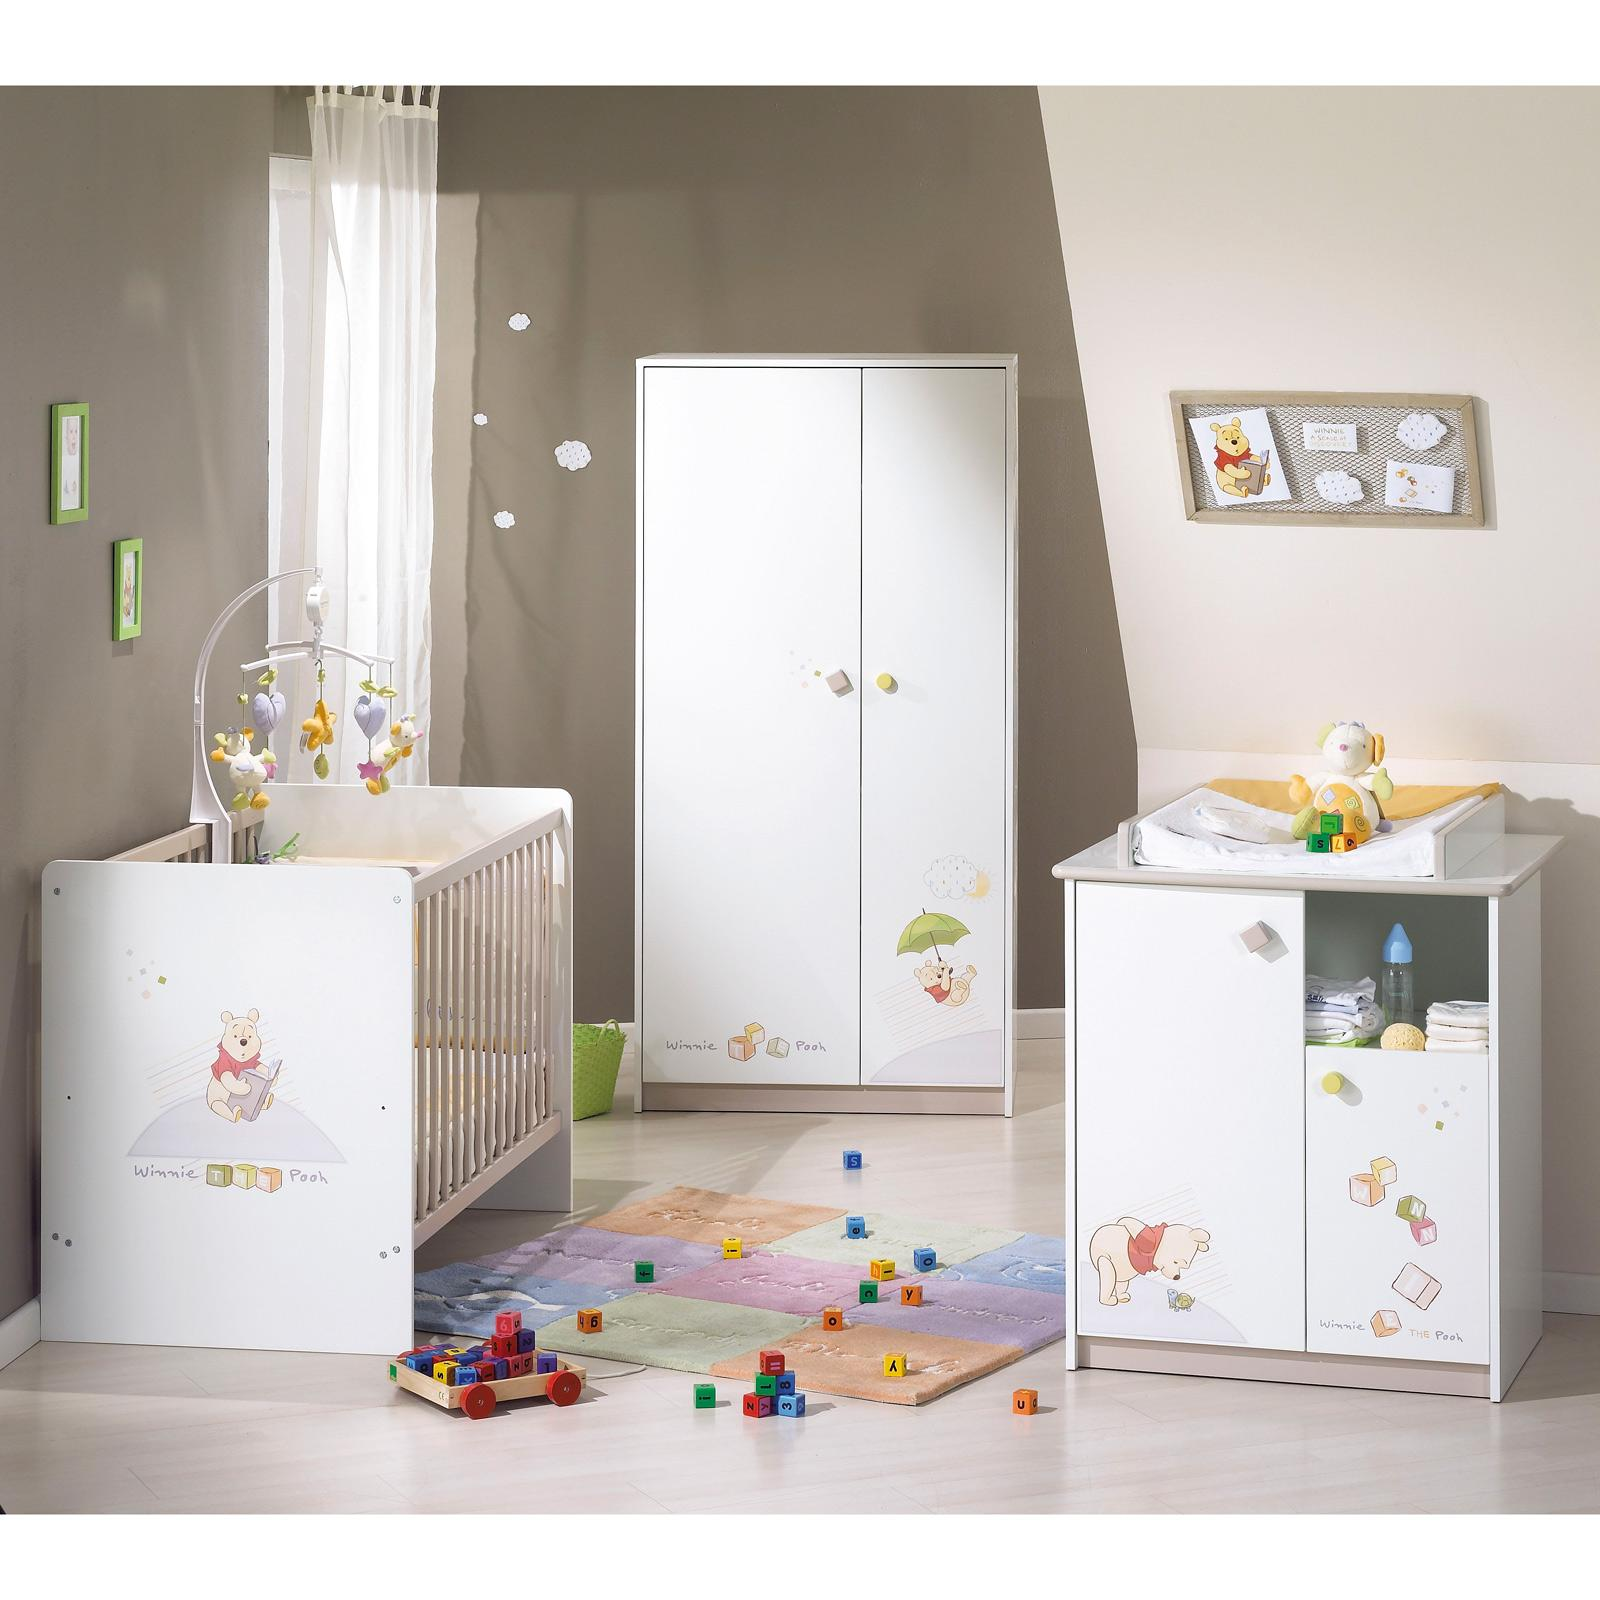 Deco chambre bebe fille winnie for Maison et decoration chambre